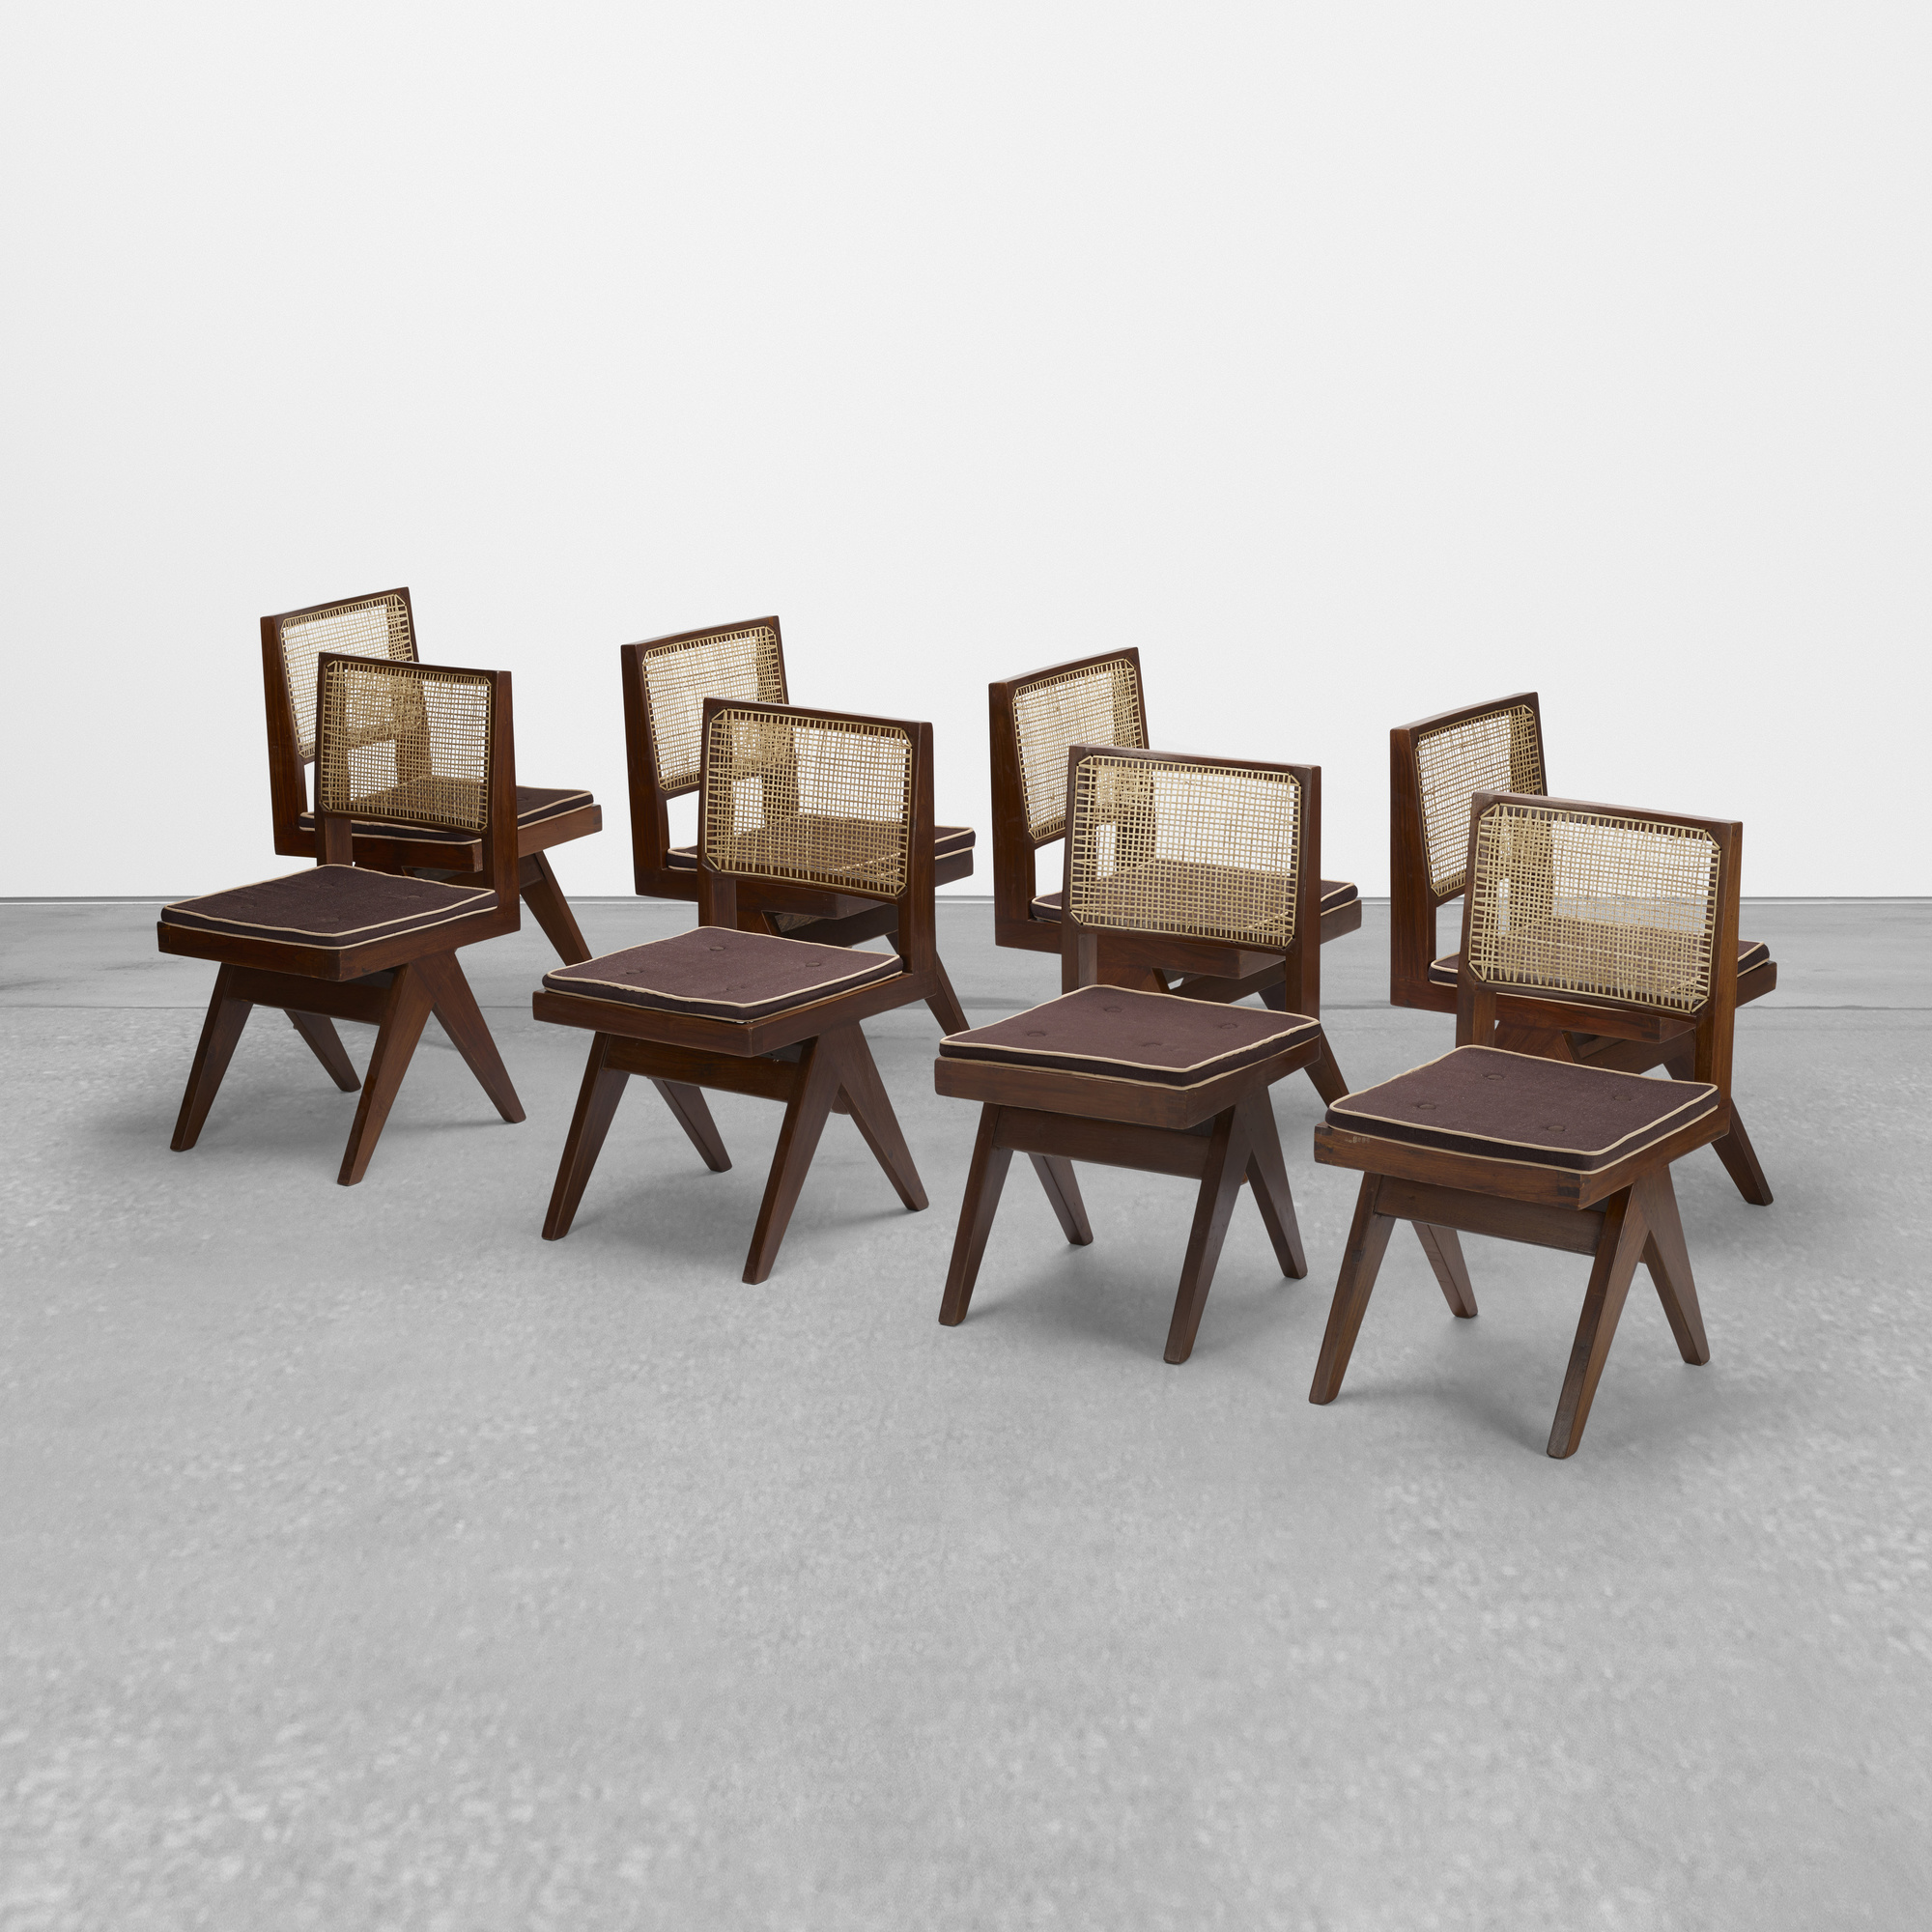 102: Pierre Jeanneret / set of eight chairs from Chandigarh (1 of 3)